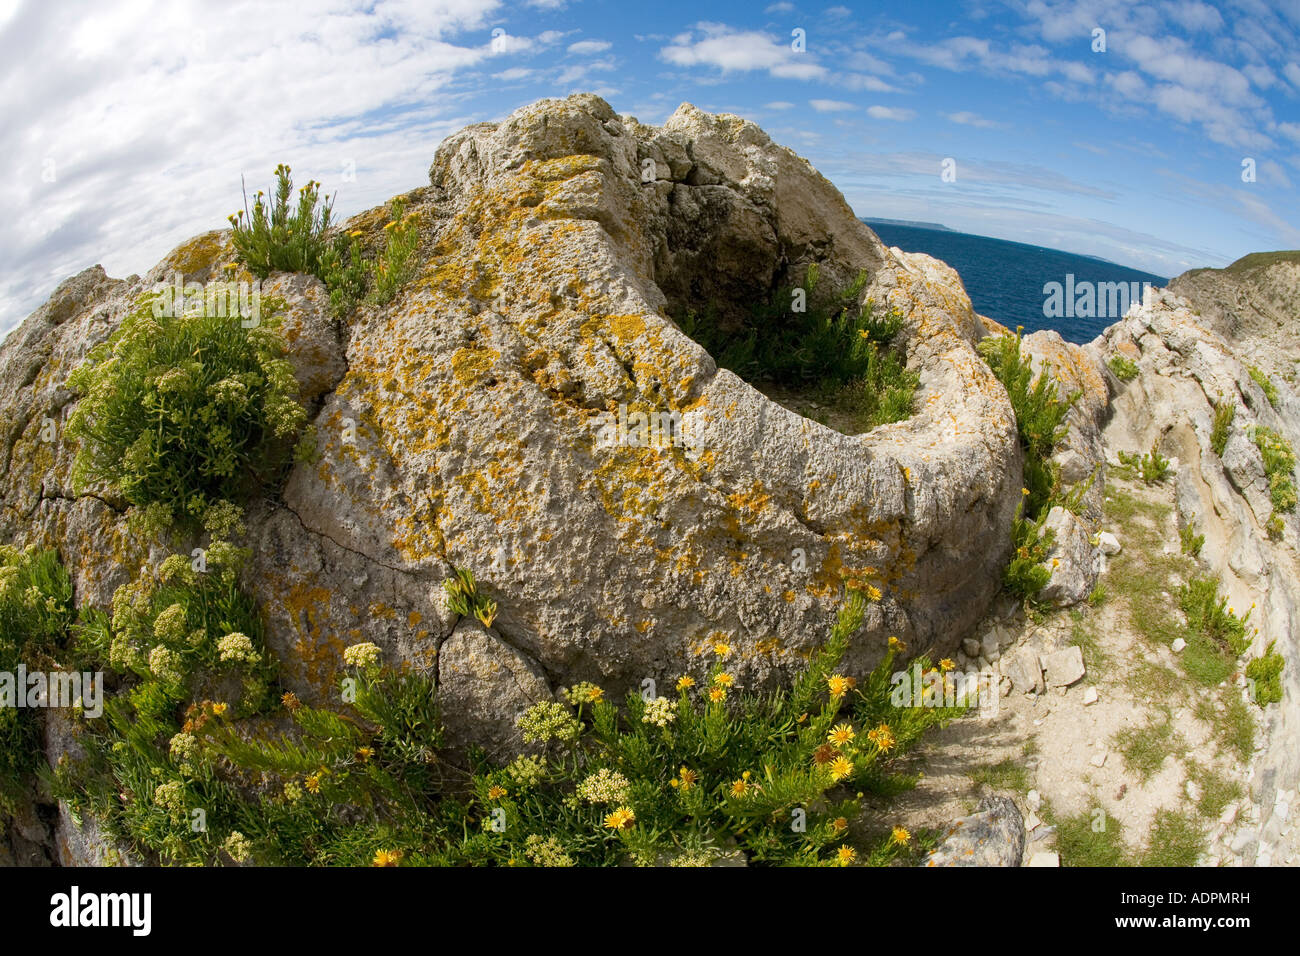 Fossilised fossilized fossil forest near Lulworth Cove Jurassic Coast World Heritage Site on sunny summers day Dorset - Stock Image